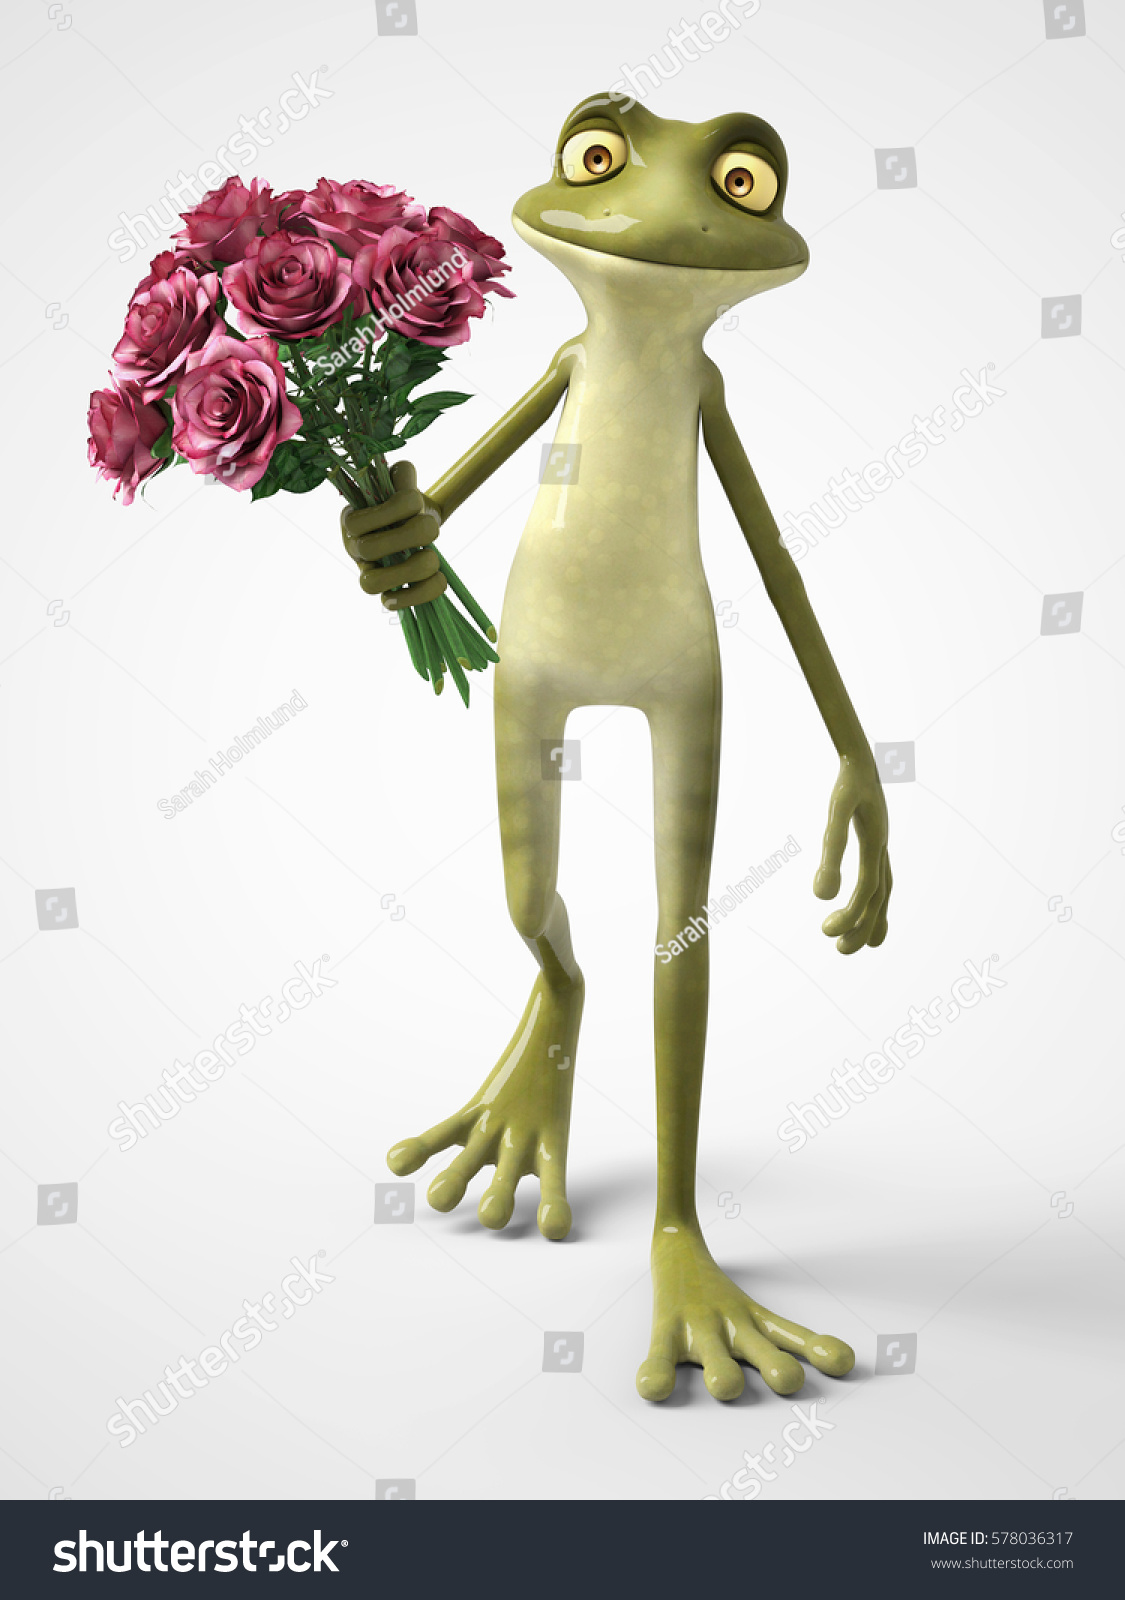 3d rendering smiling romantic cartoon frog stock illustration